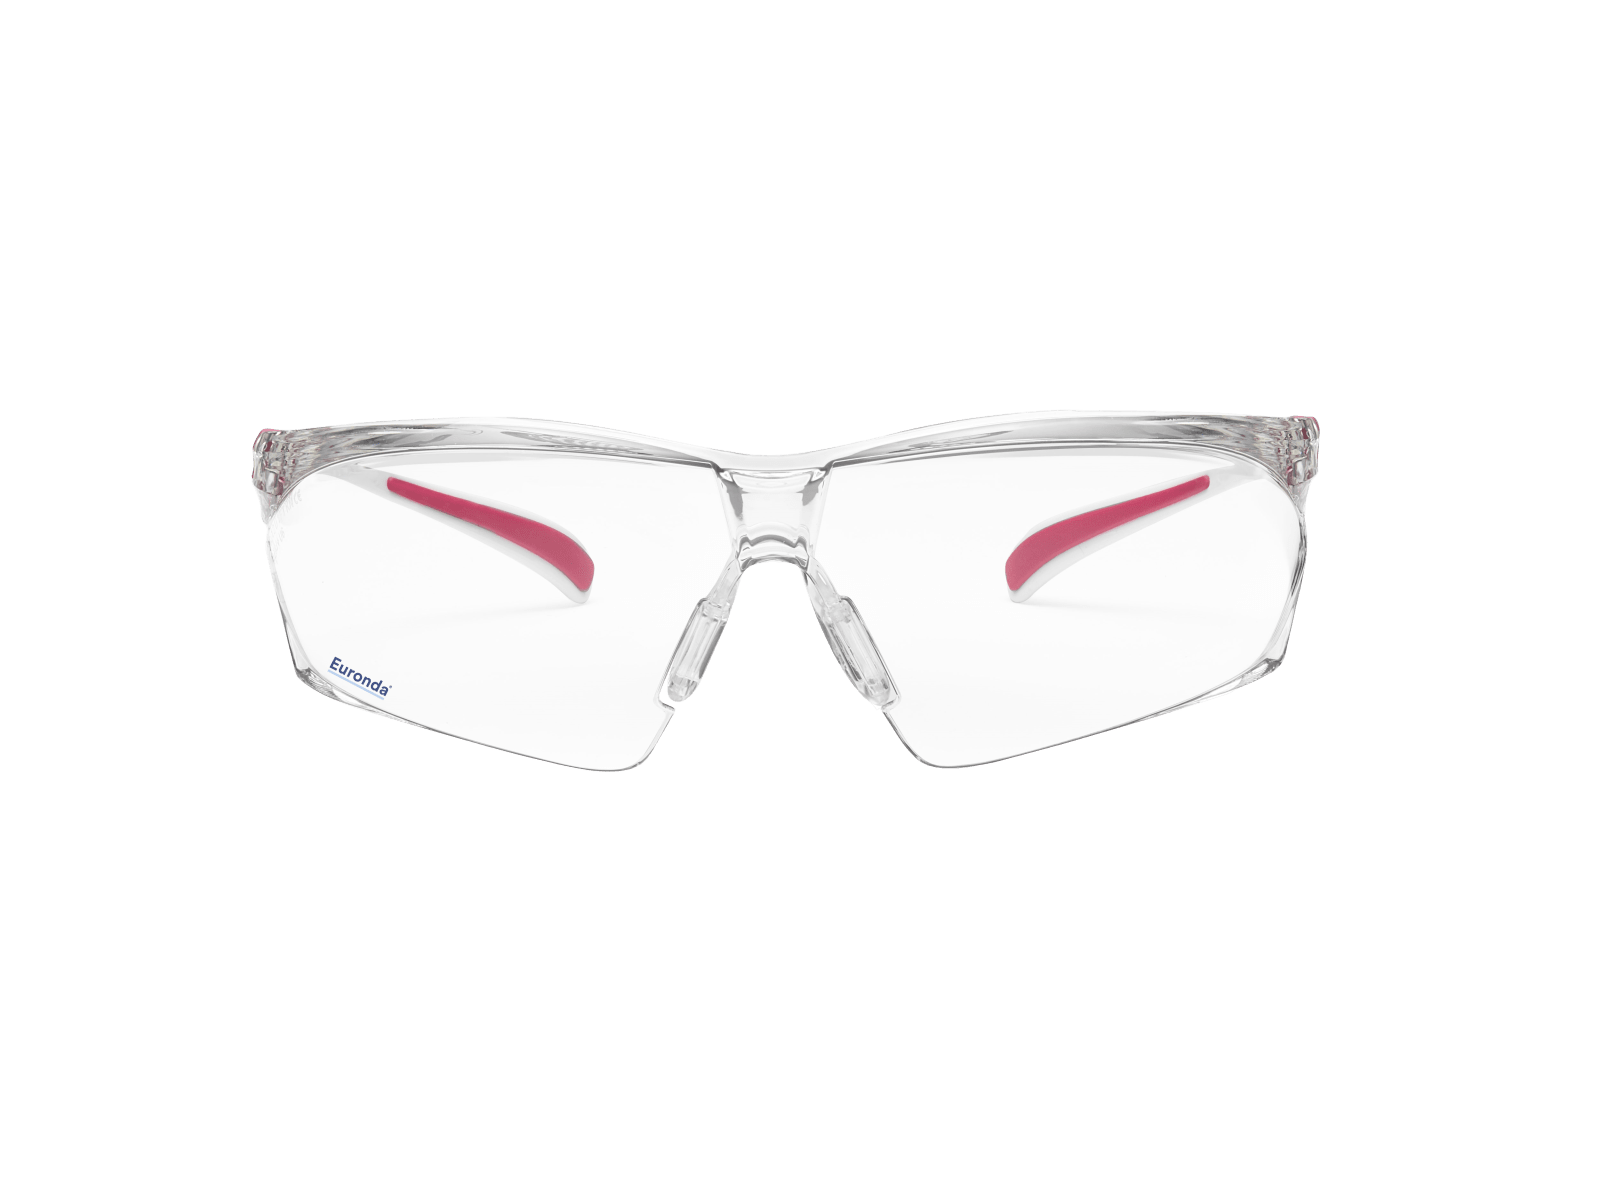 2611070-monoart-schutzbrille-fitup-pink-front